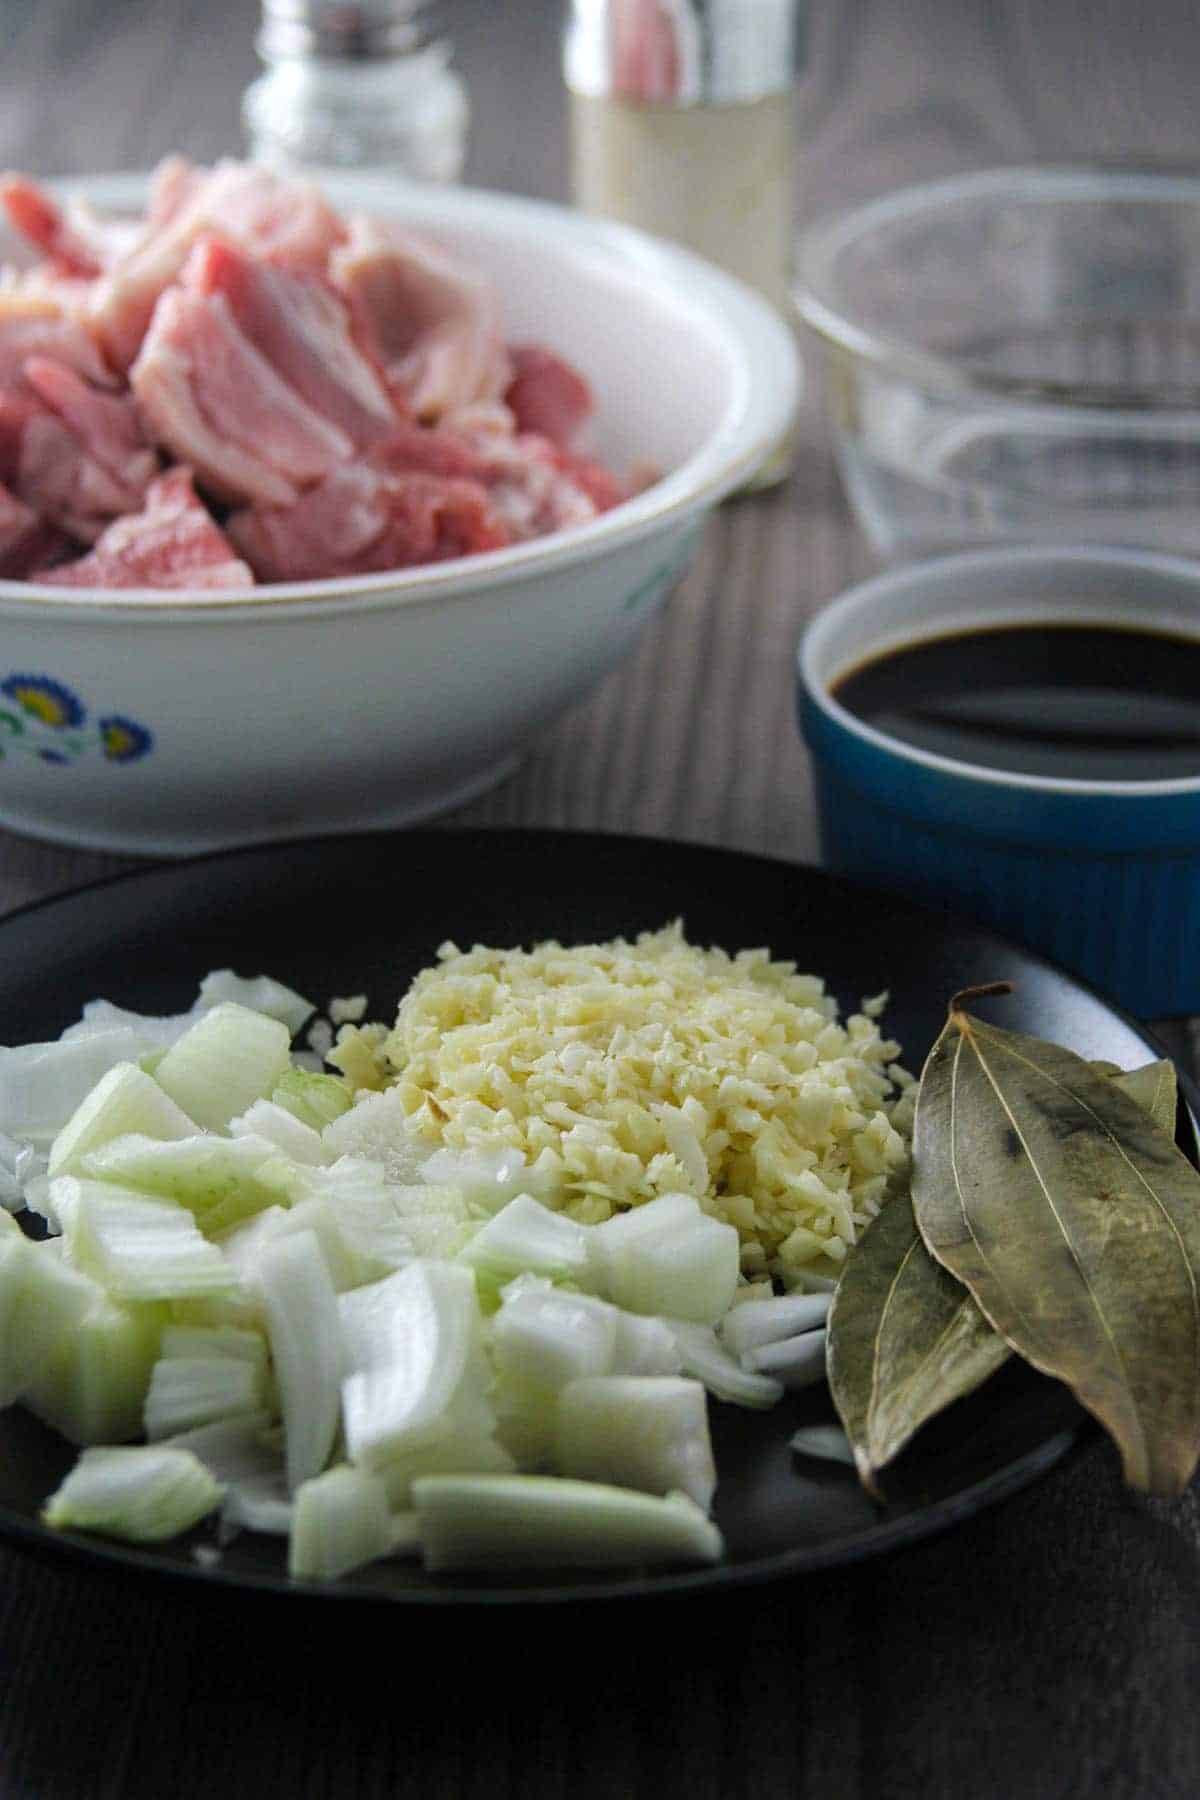 chopped onions, minced garlic, bay leaves on a black plate, soy sauce in a small blue bowl, vinegar in a clear bowl, and pork belly cubes in a white bowl